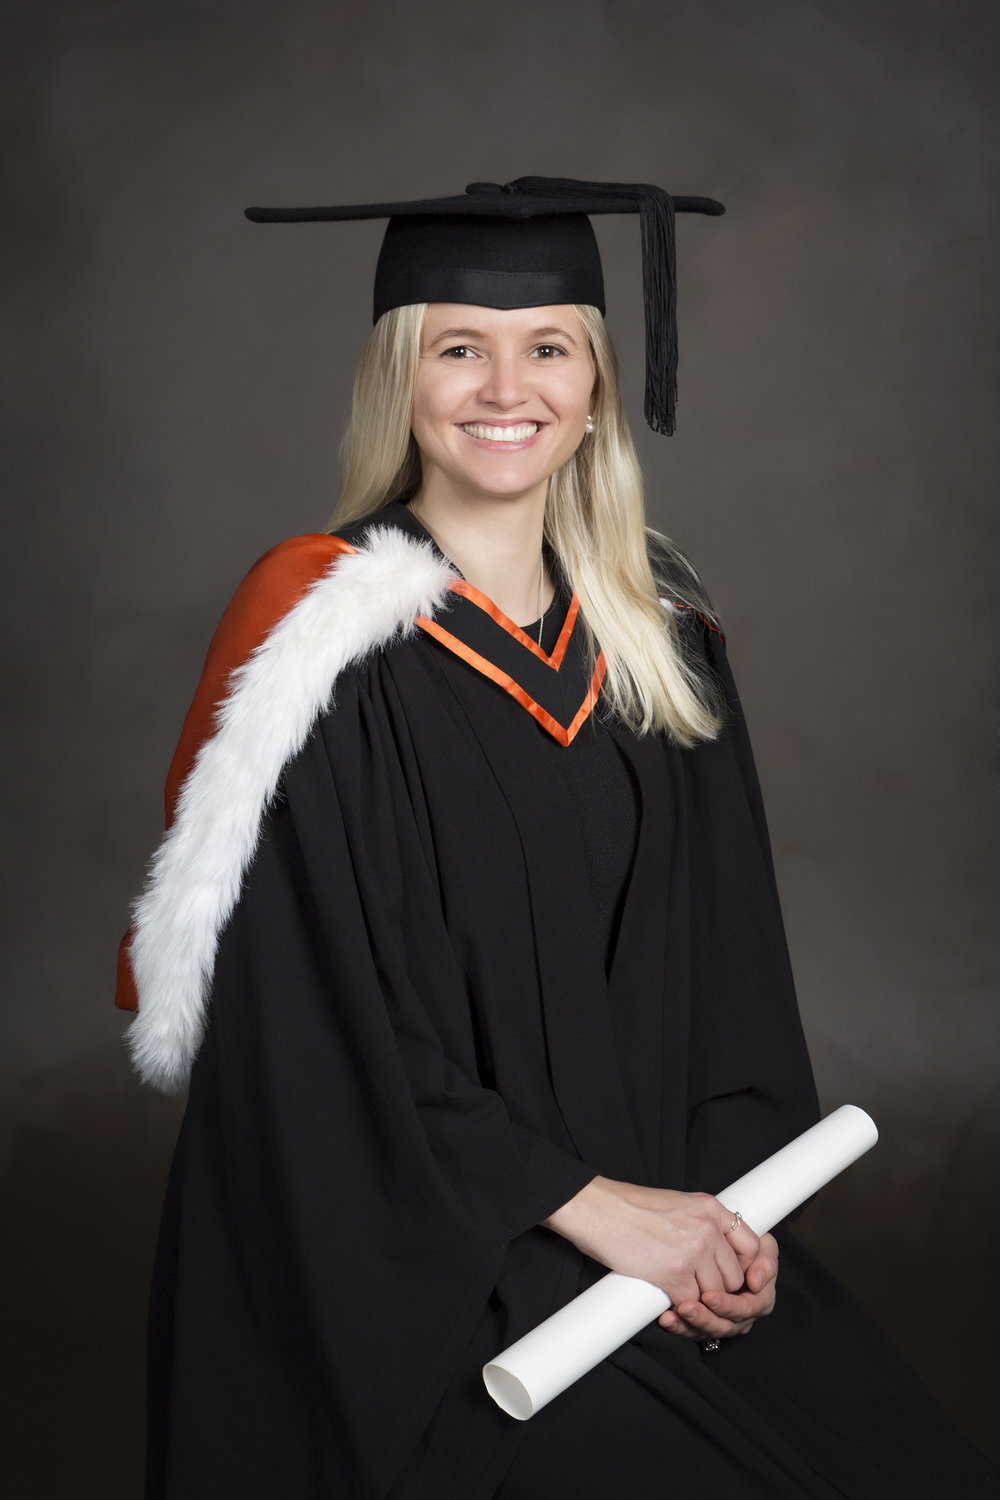 Dress: hat level with ground, fringe hidden, V 10cm down from neck, hood off right shoulder with colour showing. Hold scroll half way along.